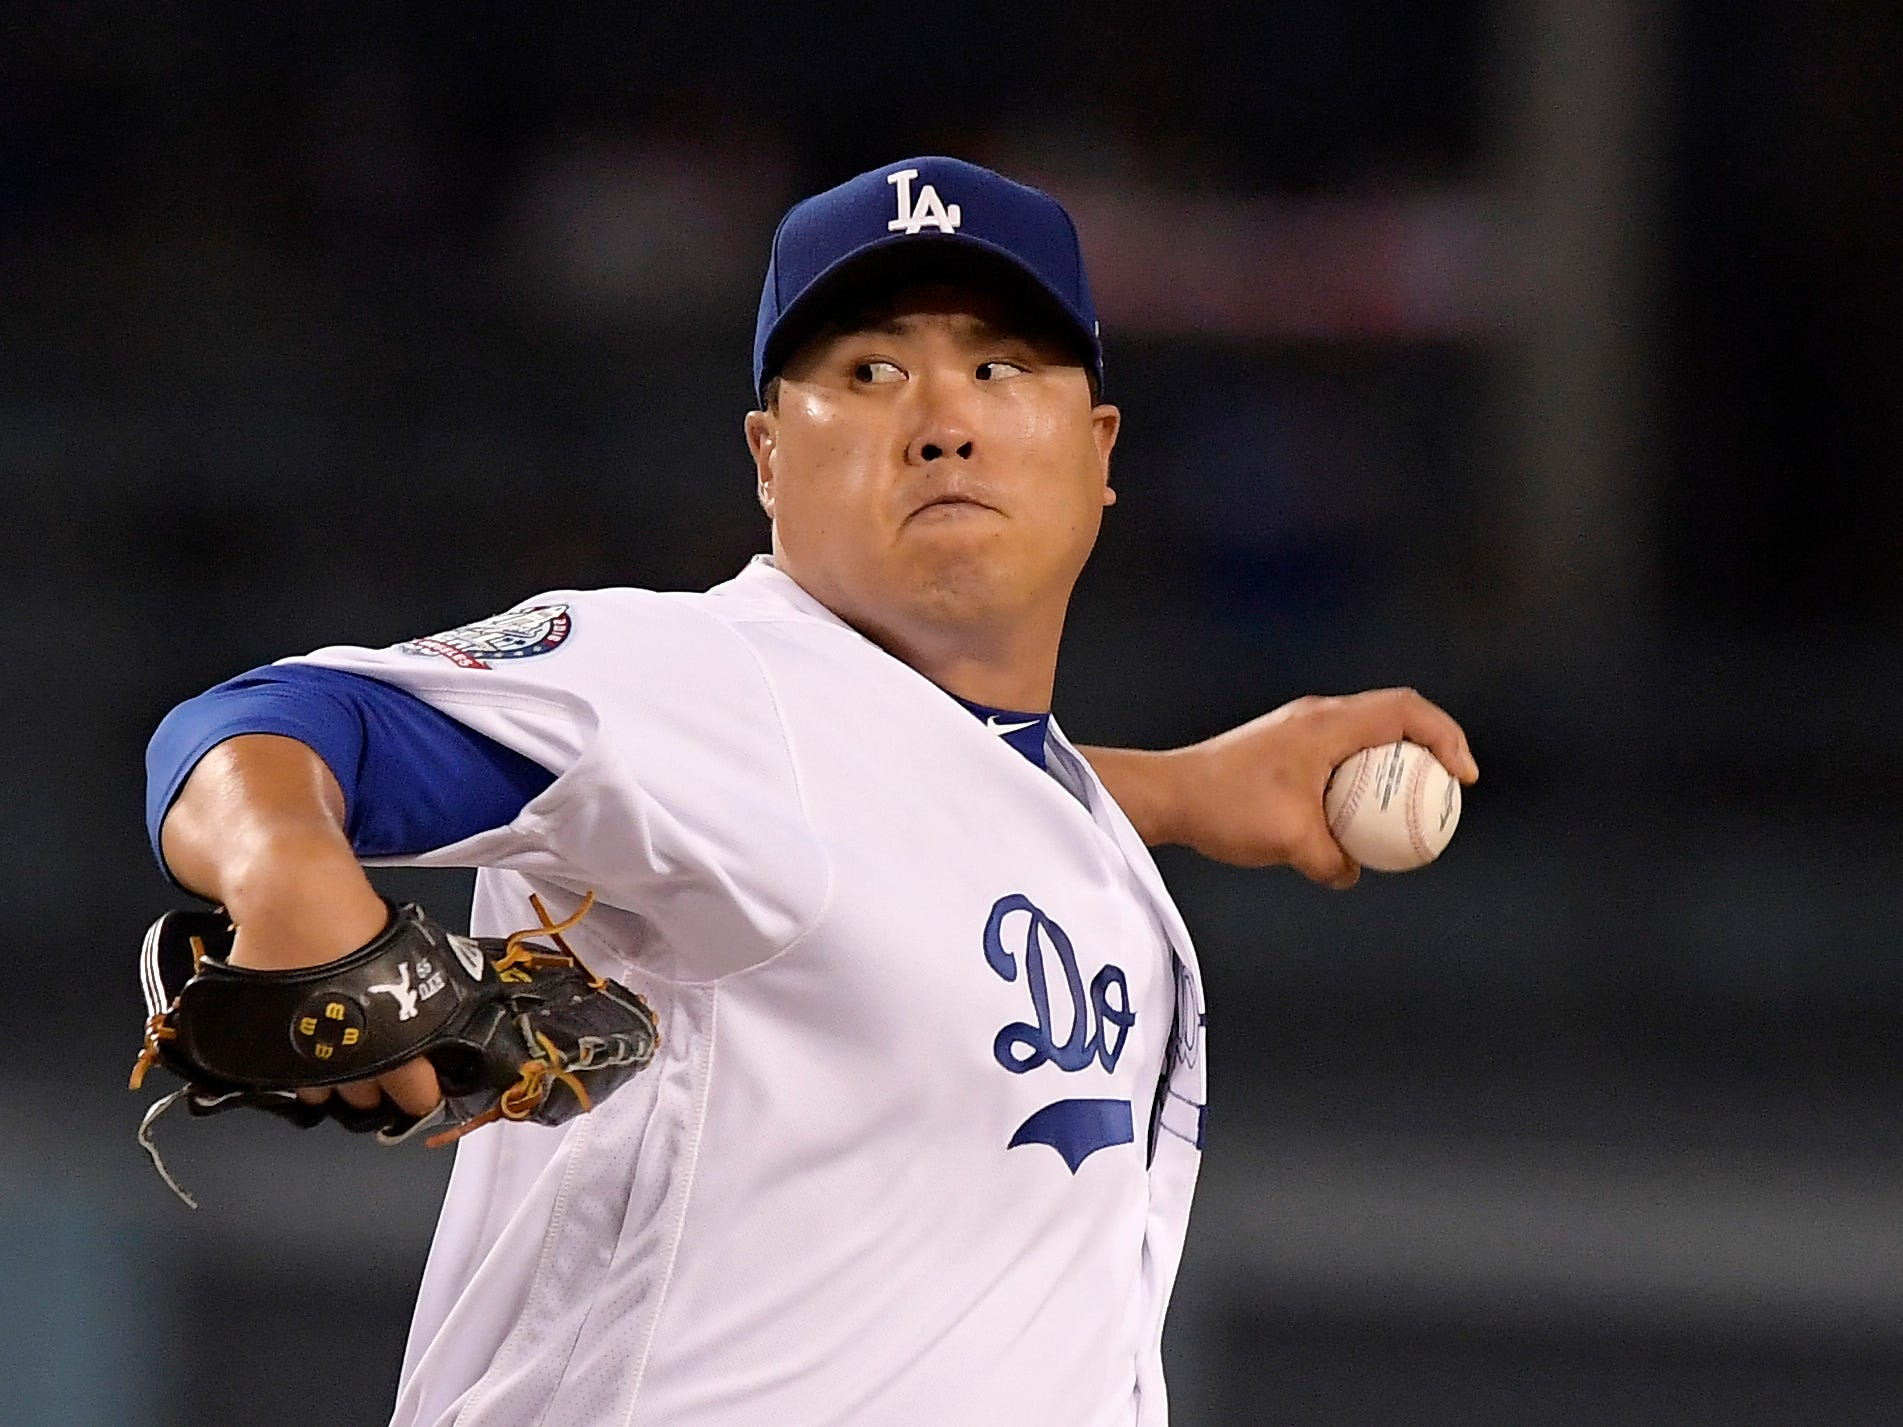 Los Angeles Dodgers starting pitcher Hyun-Jin Ryu, of South Korea, throws to the plate during the second inning of a baseball game against the Arizona Diamondbacks, Friday, Aug. 31, 2018, in Los Angeles.